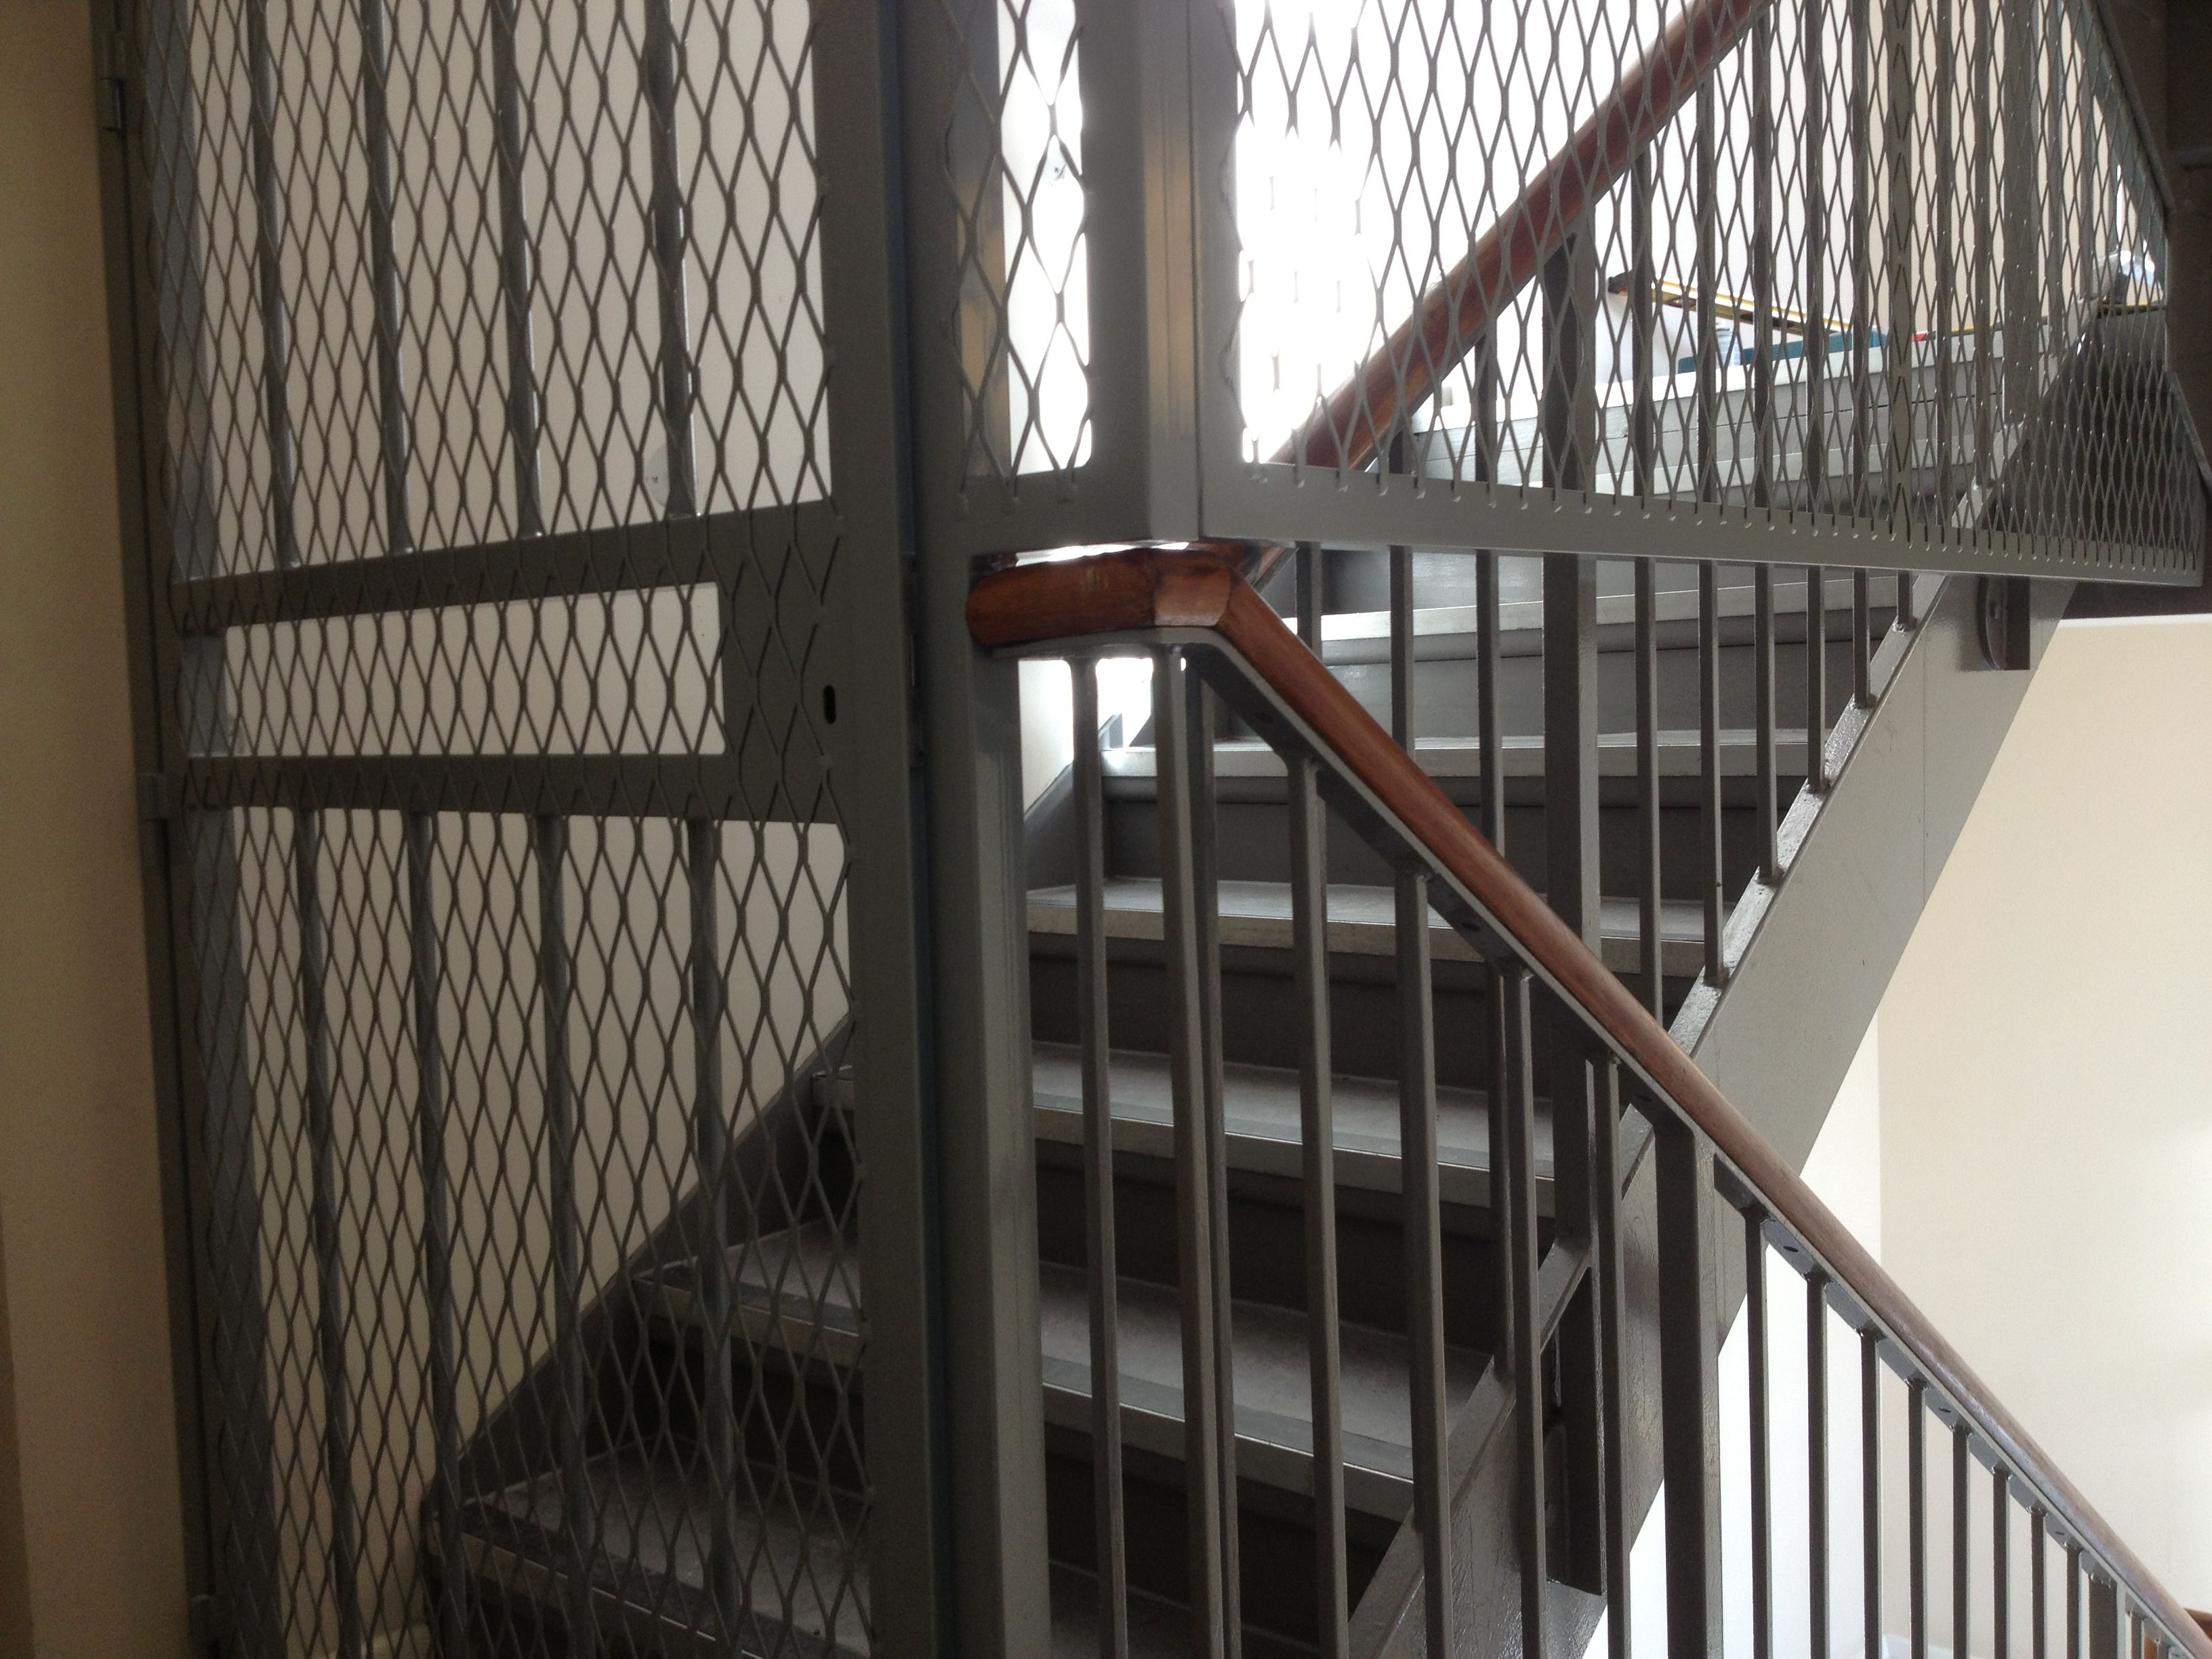 Mesh Gate With Fixed Mesh Grilles Fitted To The Staircase Of A Residential  Flat In Central London.